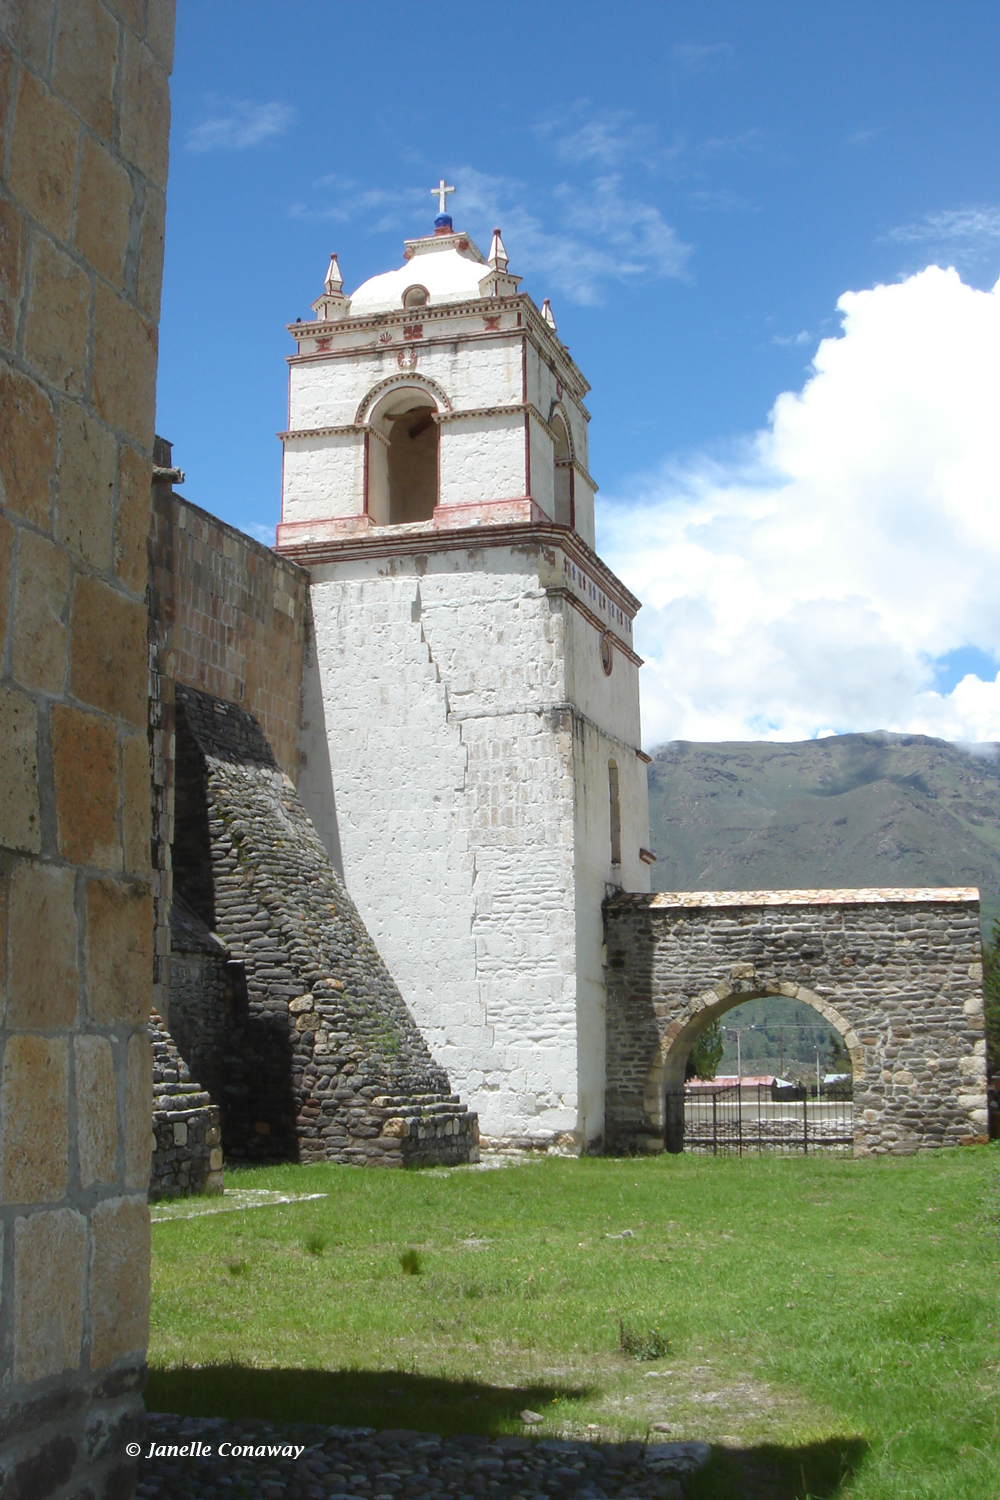 The Maca church (top) was heavily damaged in an earthquake in 1991. In Yanque (middle), it's the close-up view of the facade that's most distinctive, while the bell towers of the massive Lari church are visible from miles away.